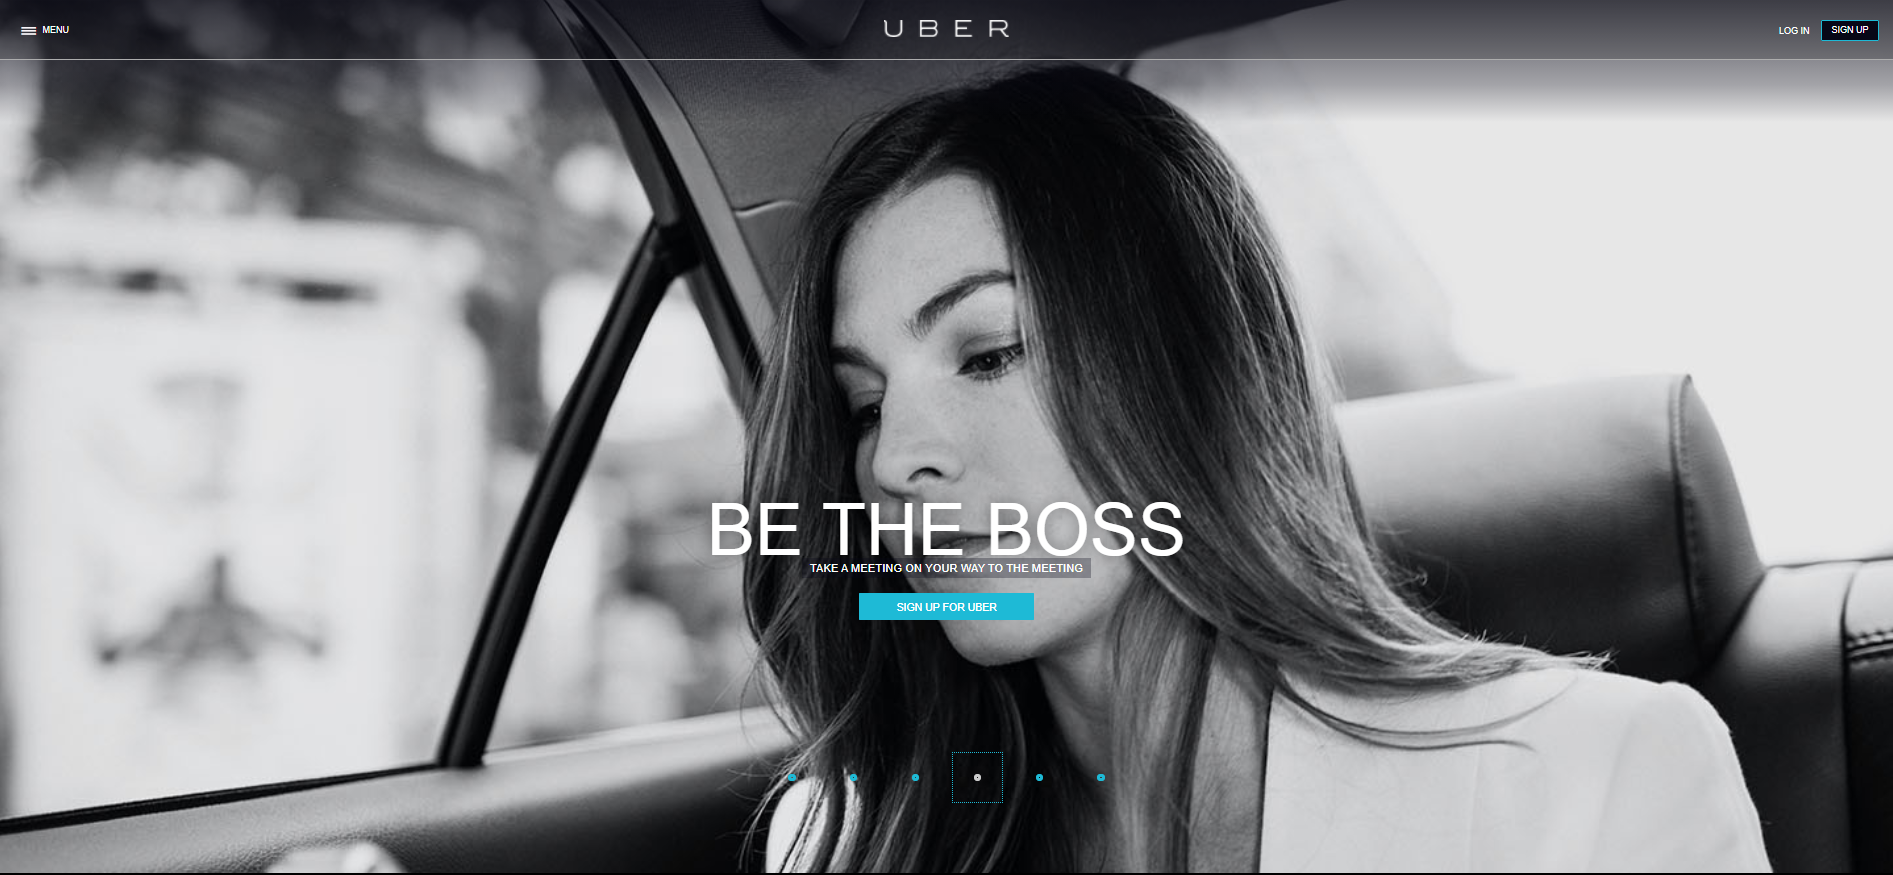 Uber_2013_d.png